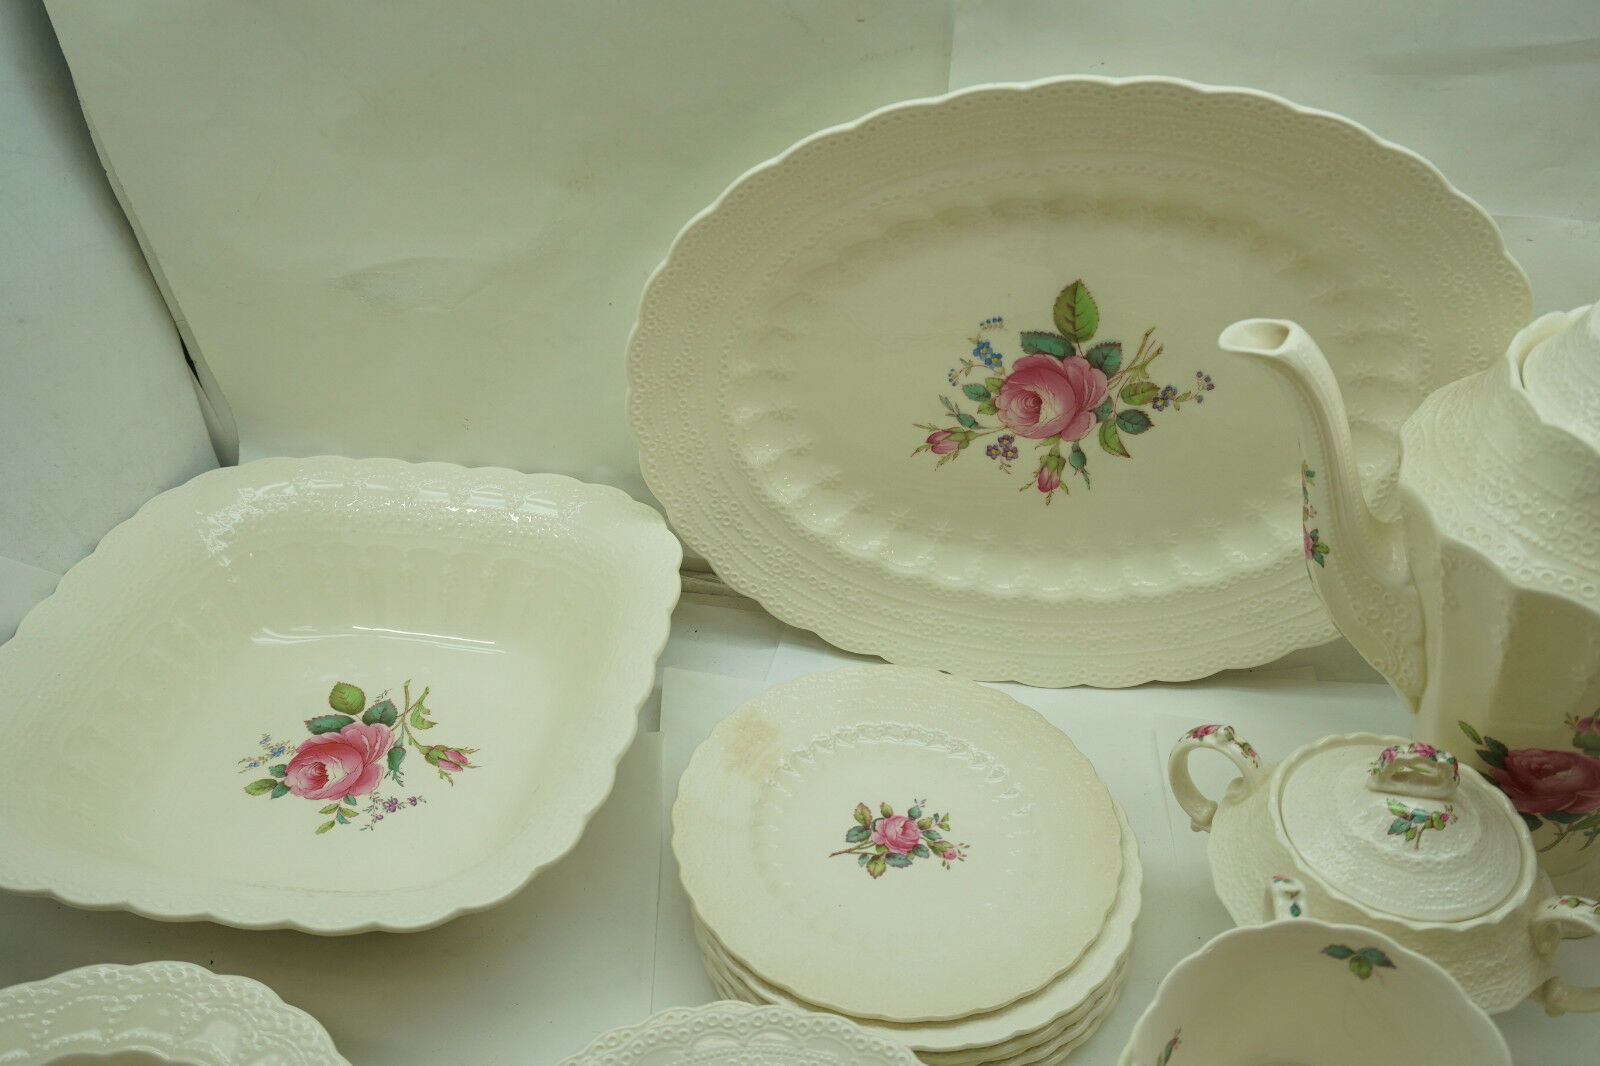 SPODE CHINA JEWEL BILLINGSLEY ROSE 44 PC SET SERVICE 6 WITH EXTRAS COFFEE POT